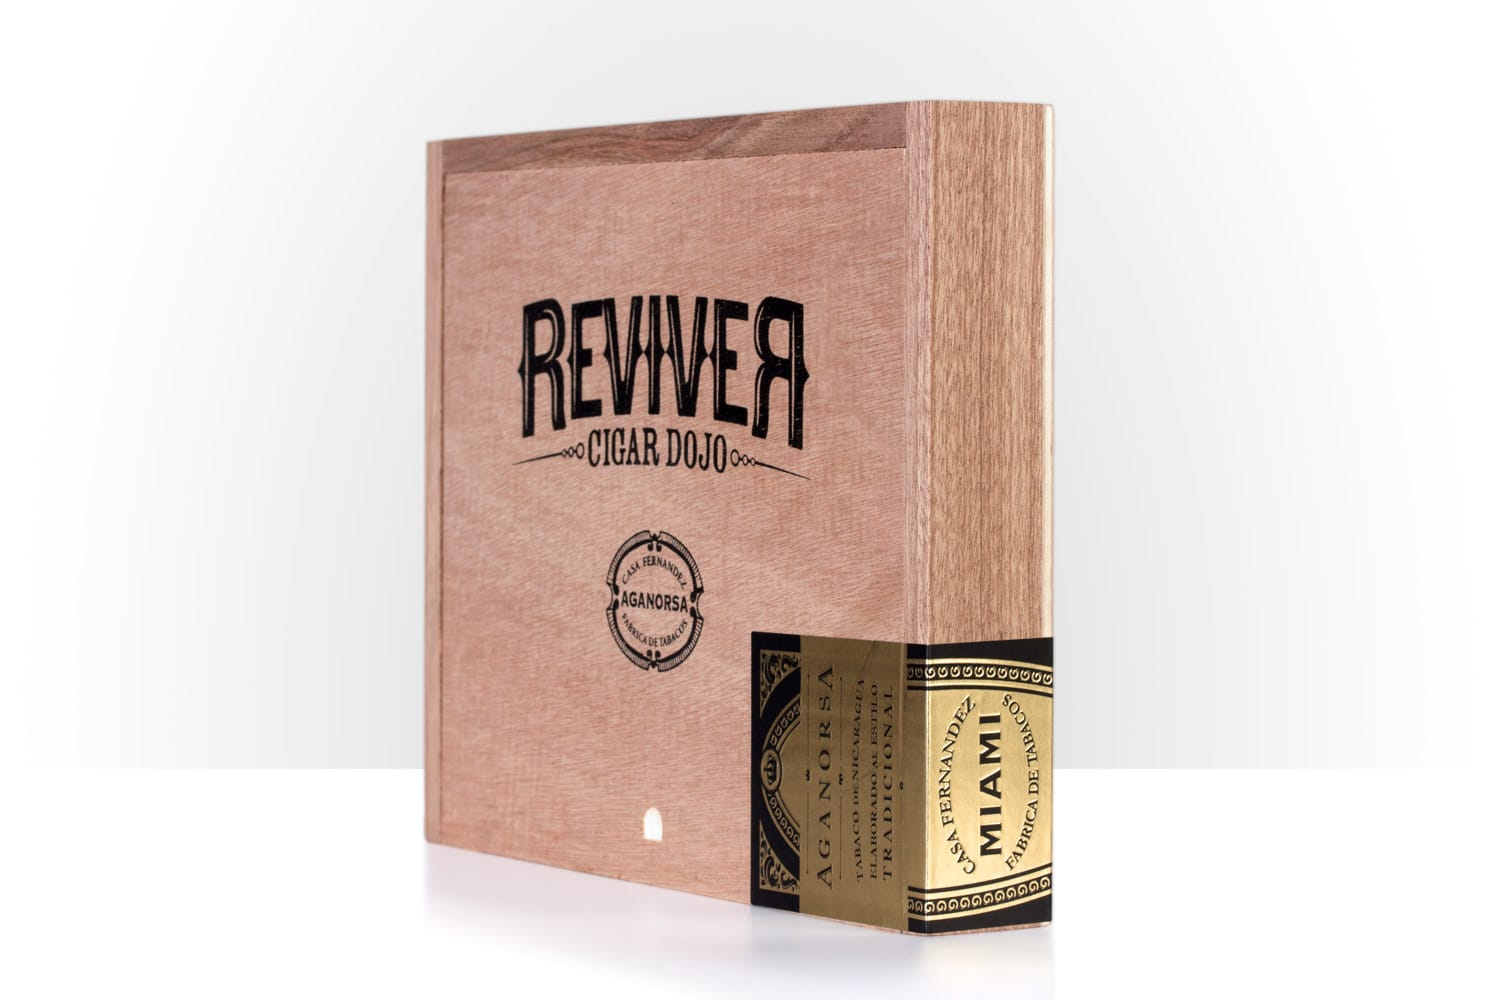 Cigar Dojo ReviveR Aganorsa Leaf box side